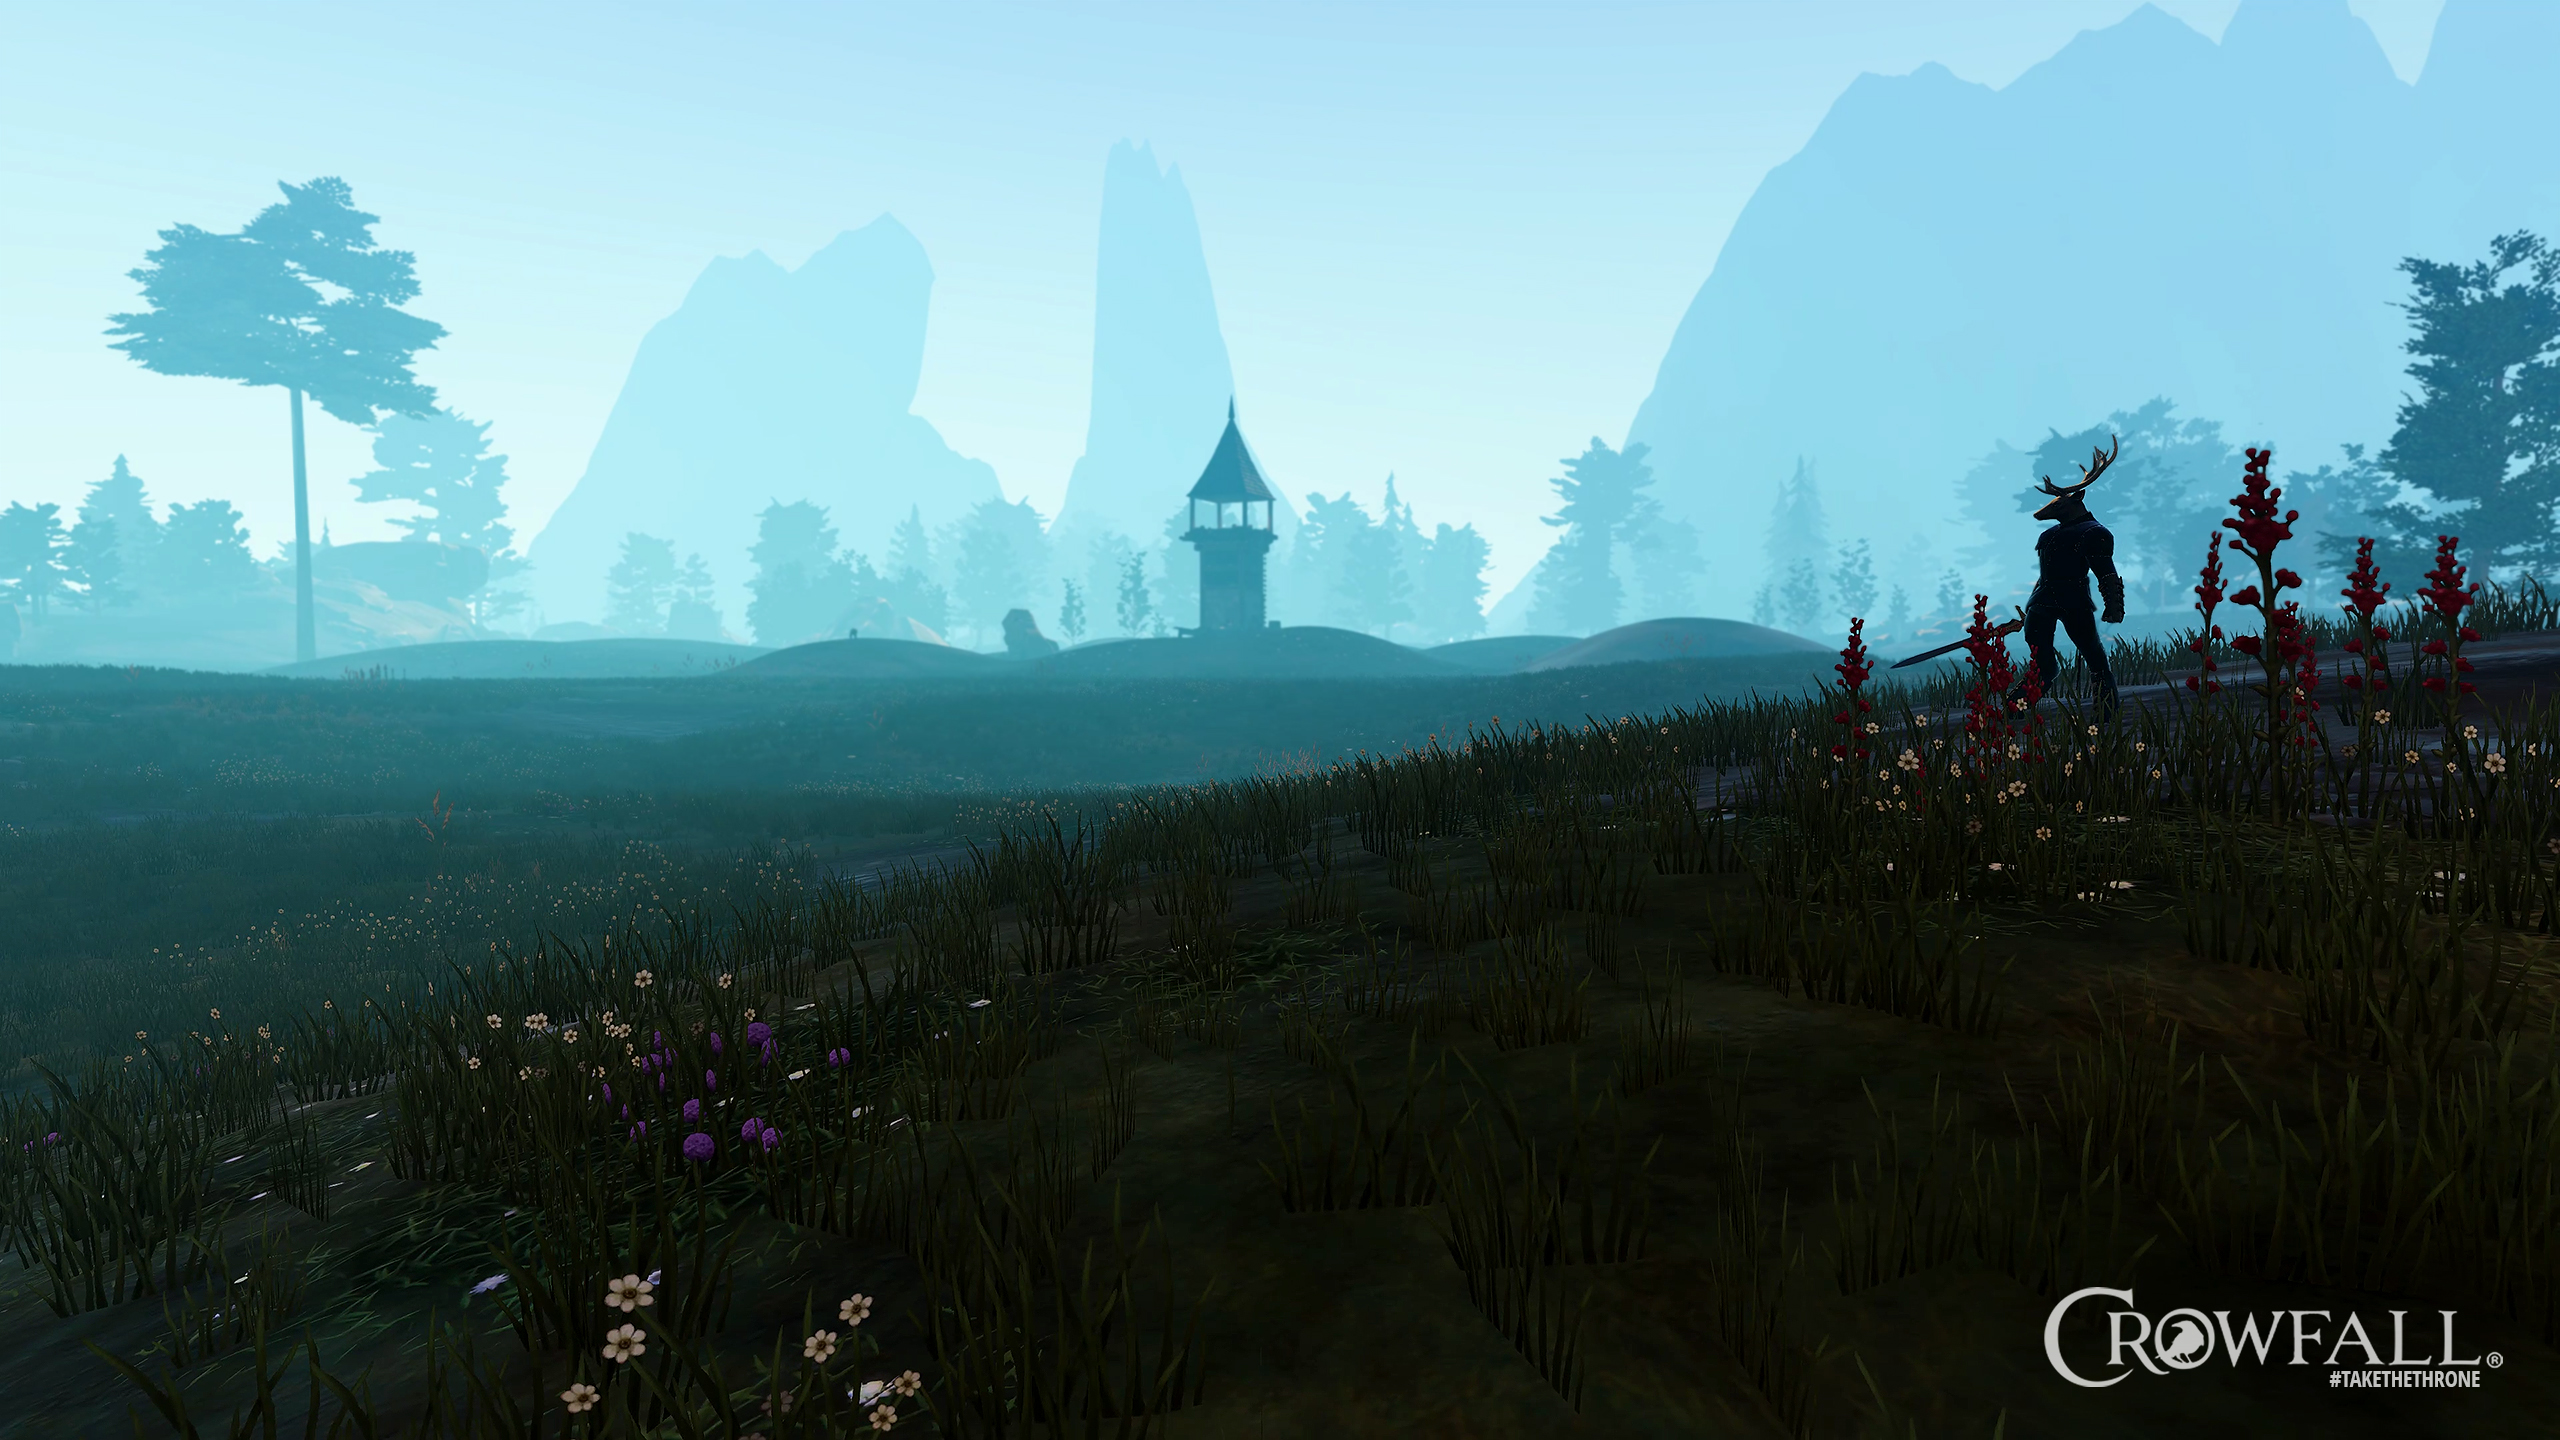 Crowfall ElkenSolitude 2560x1440